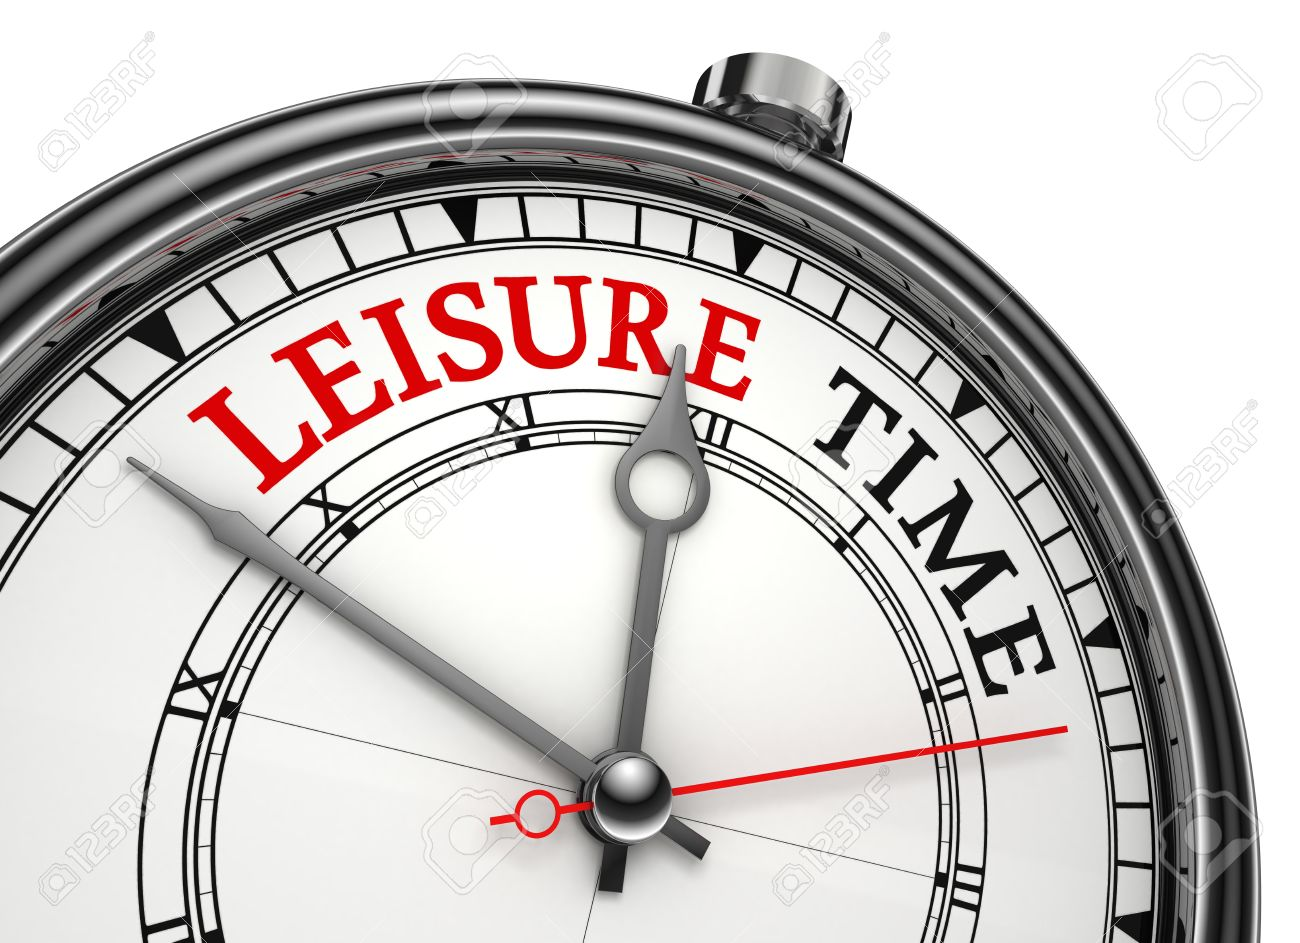 Leisure Time - Learn Vocab in IELTS Reading